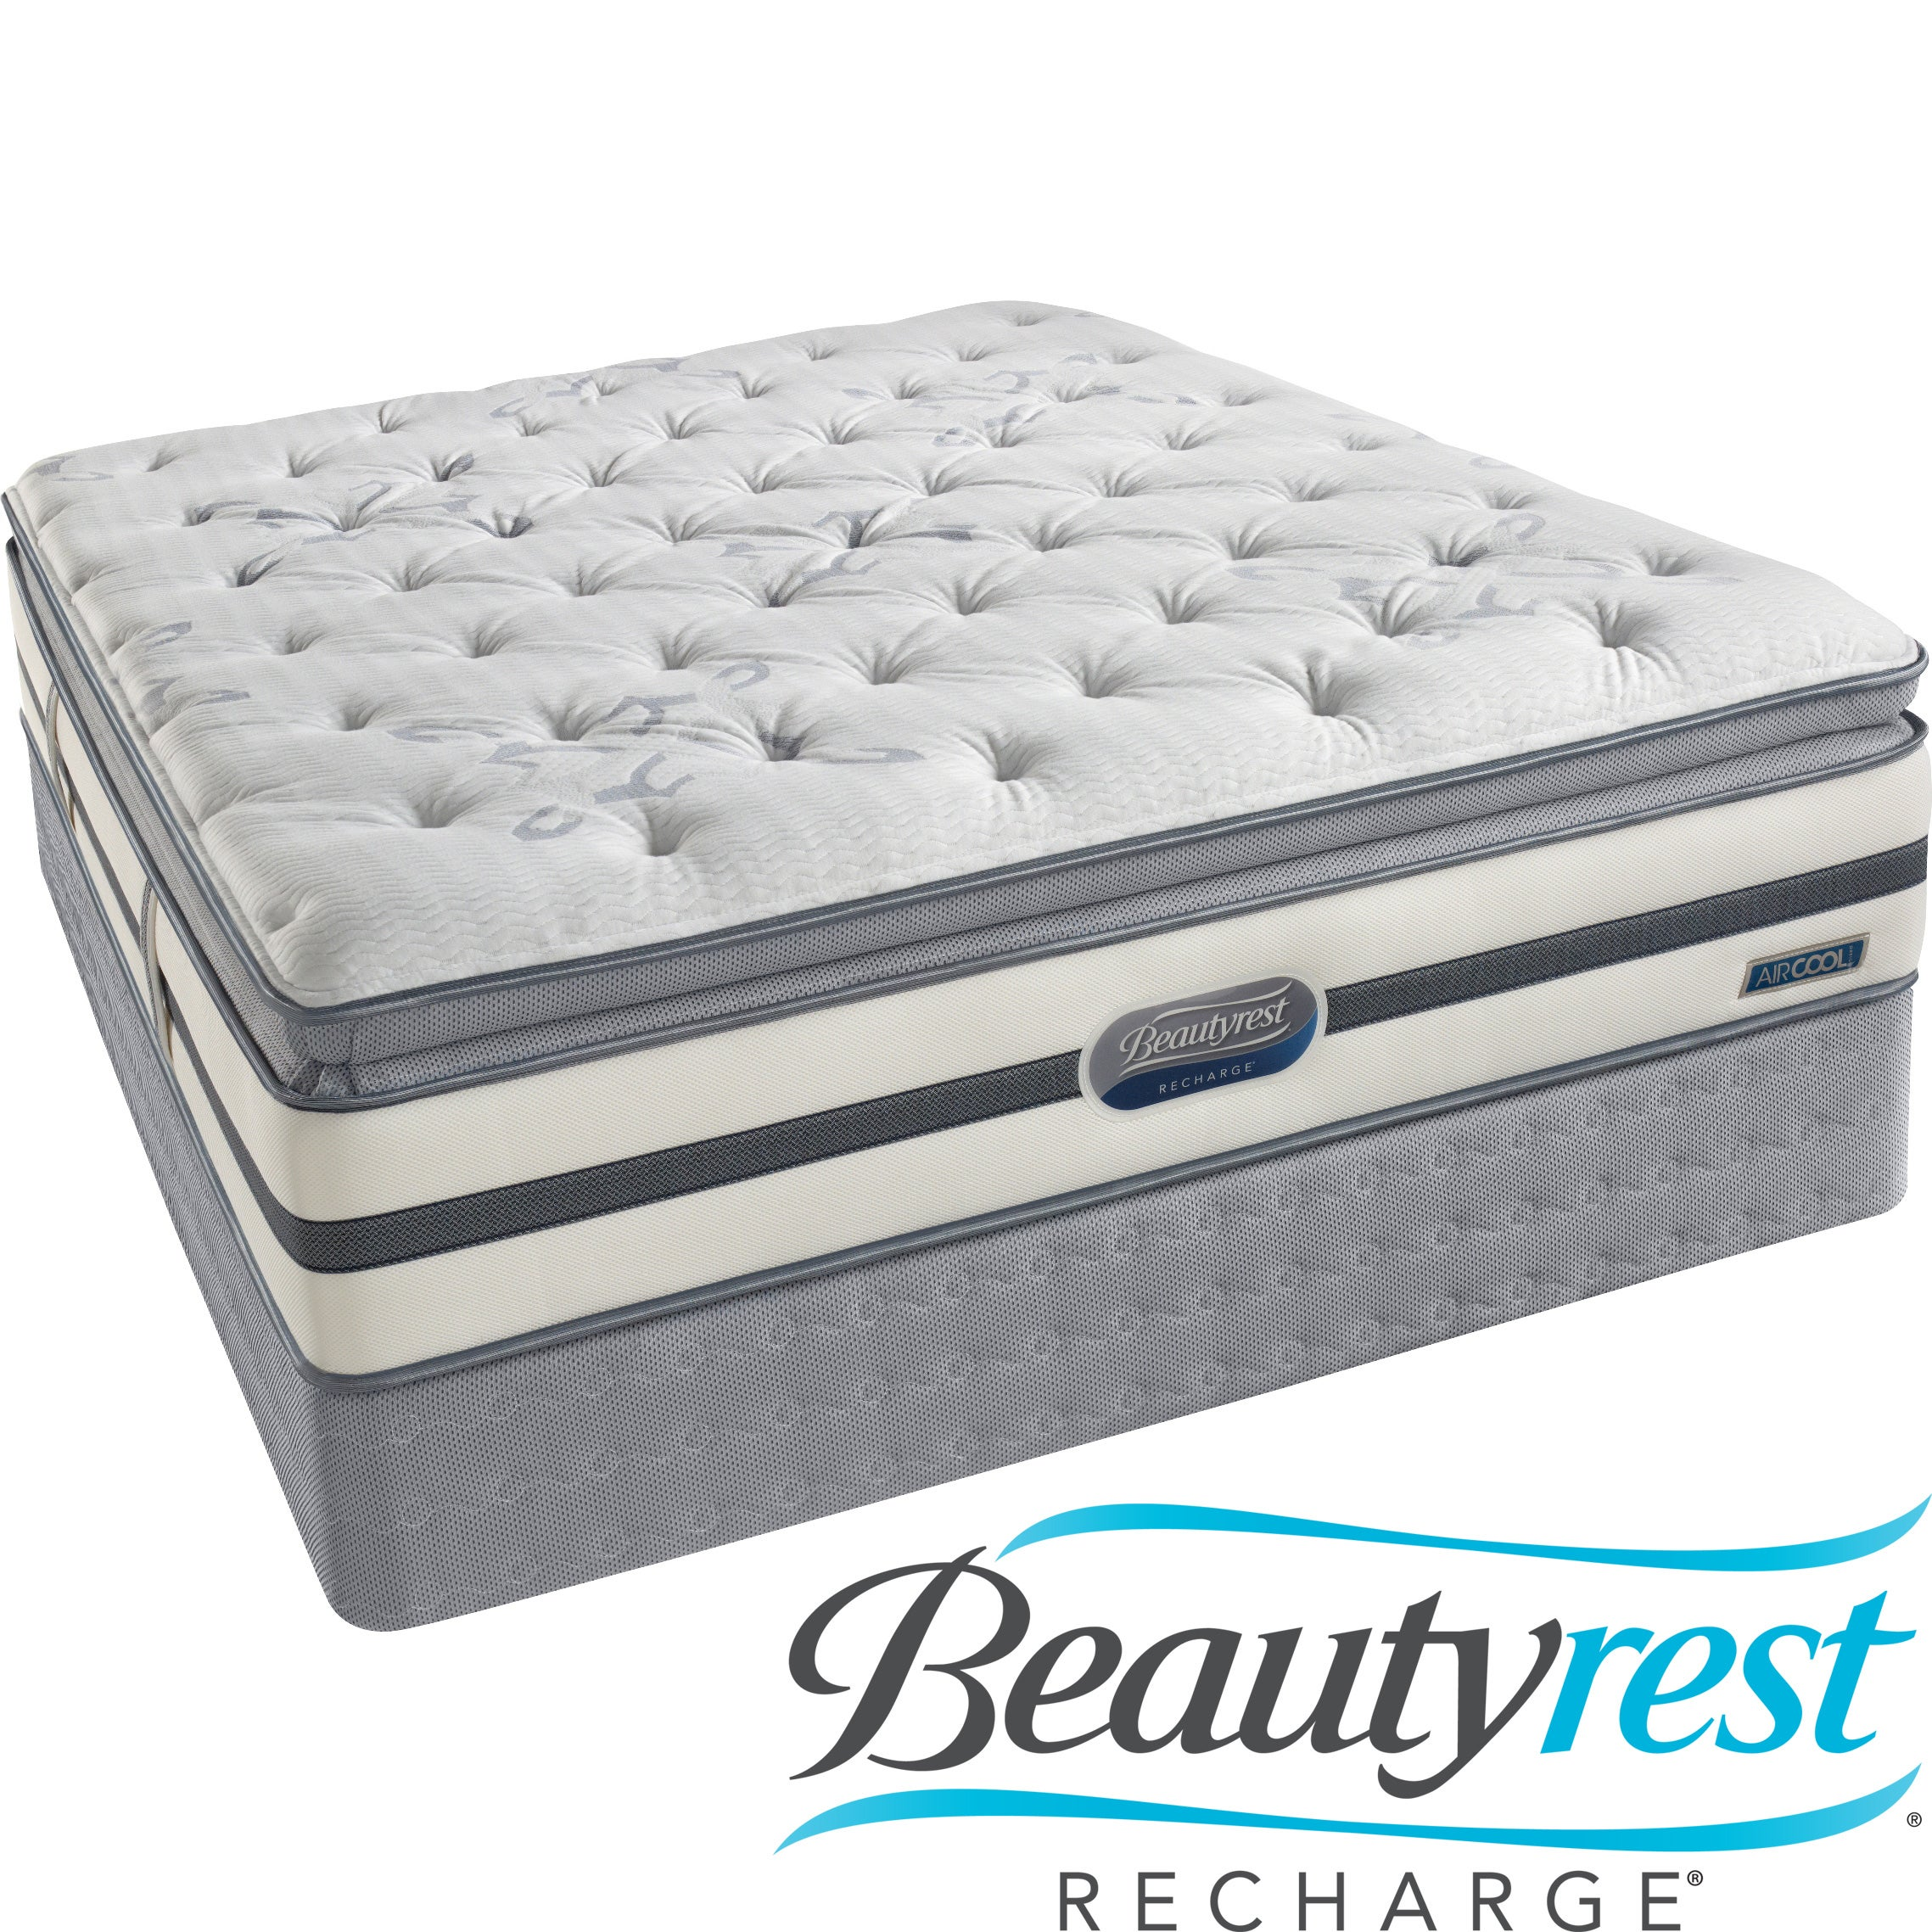 Beautyrest recharge spalding luxury firm queen mattress set bed mattress sale Mattress set sale queen